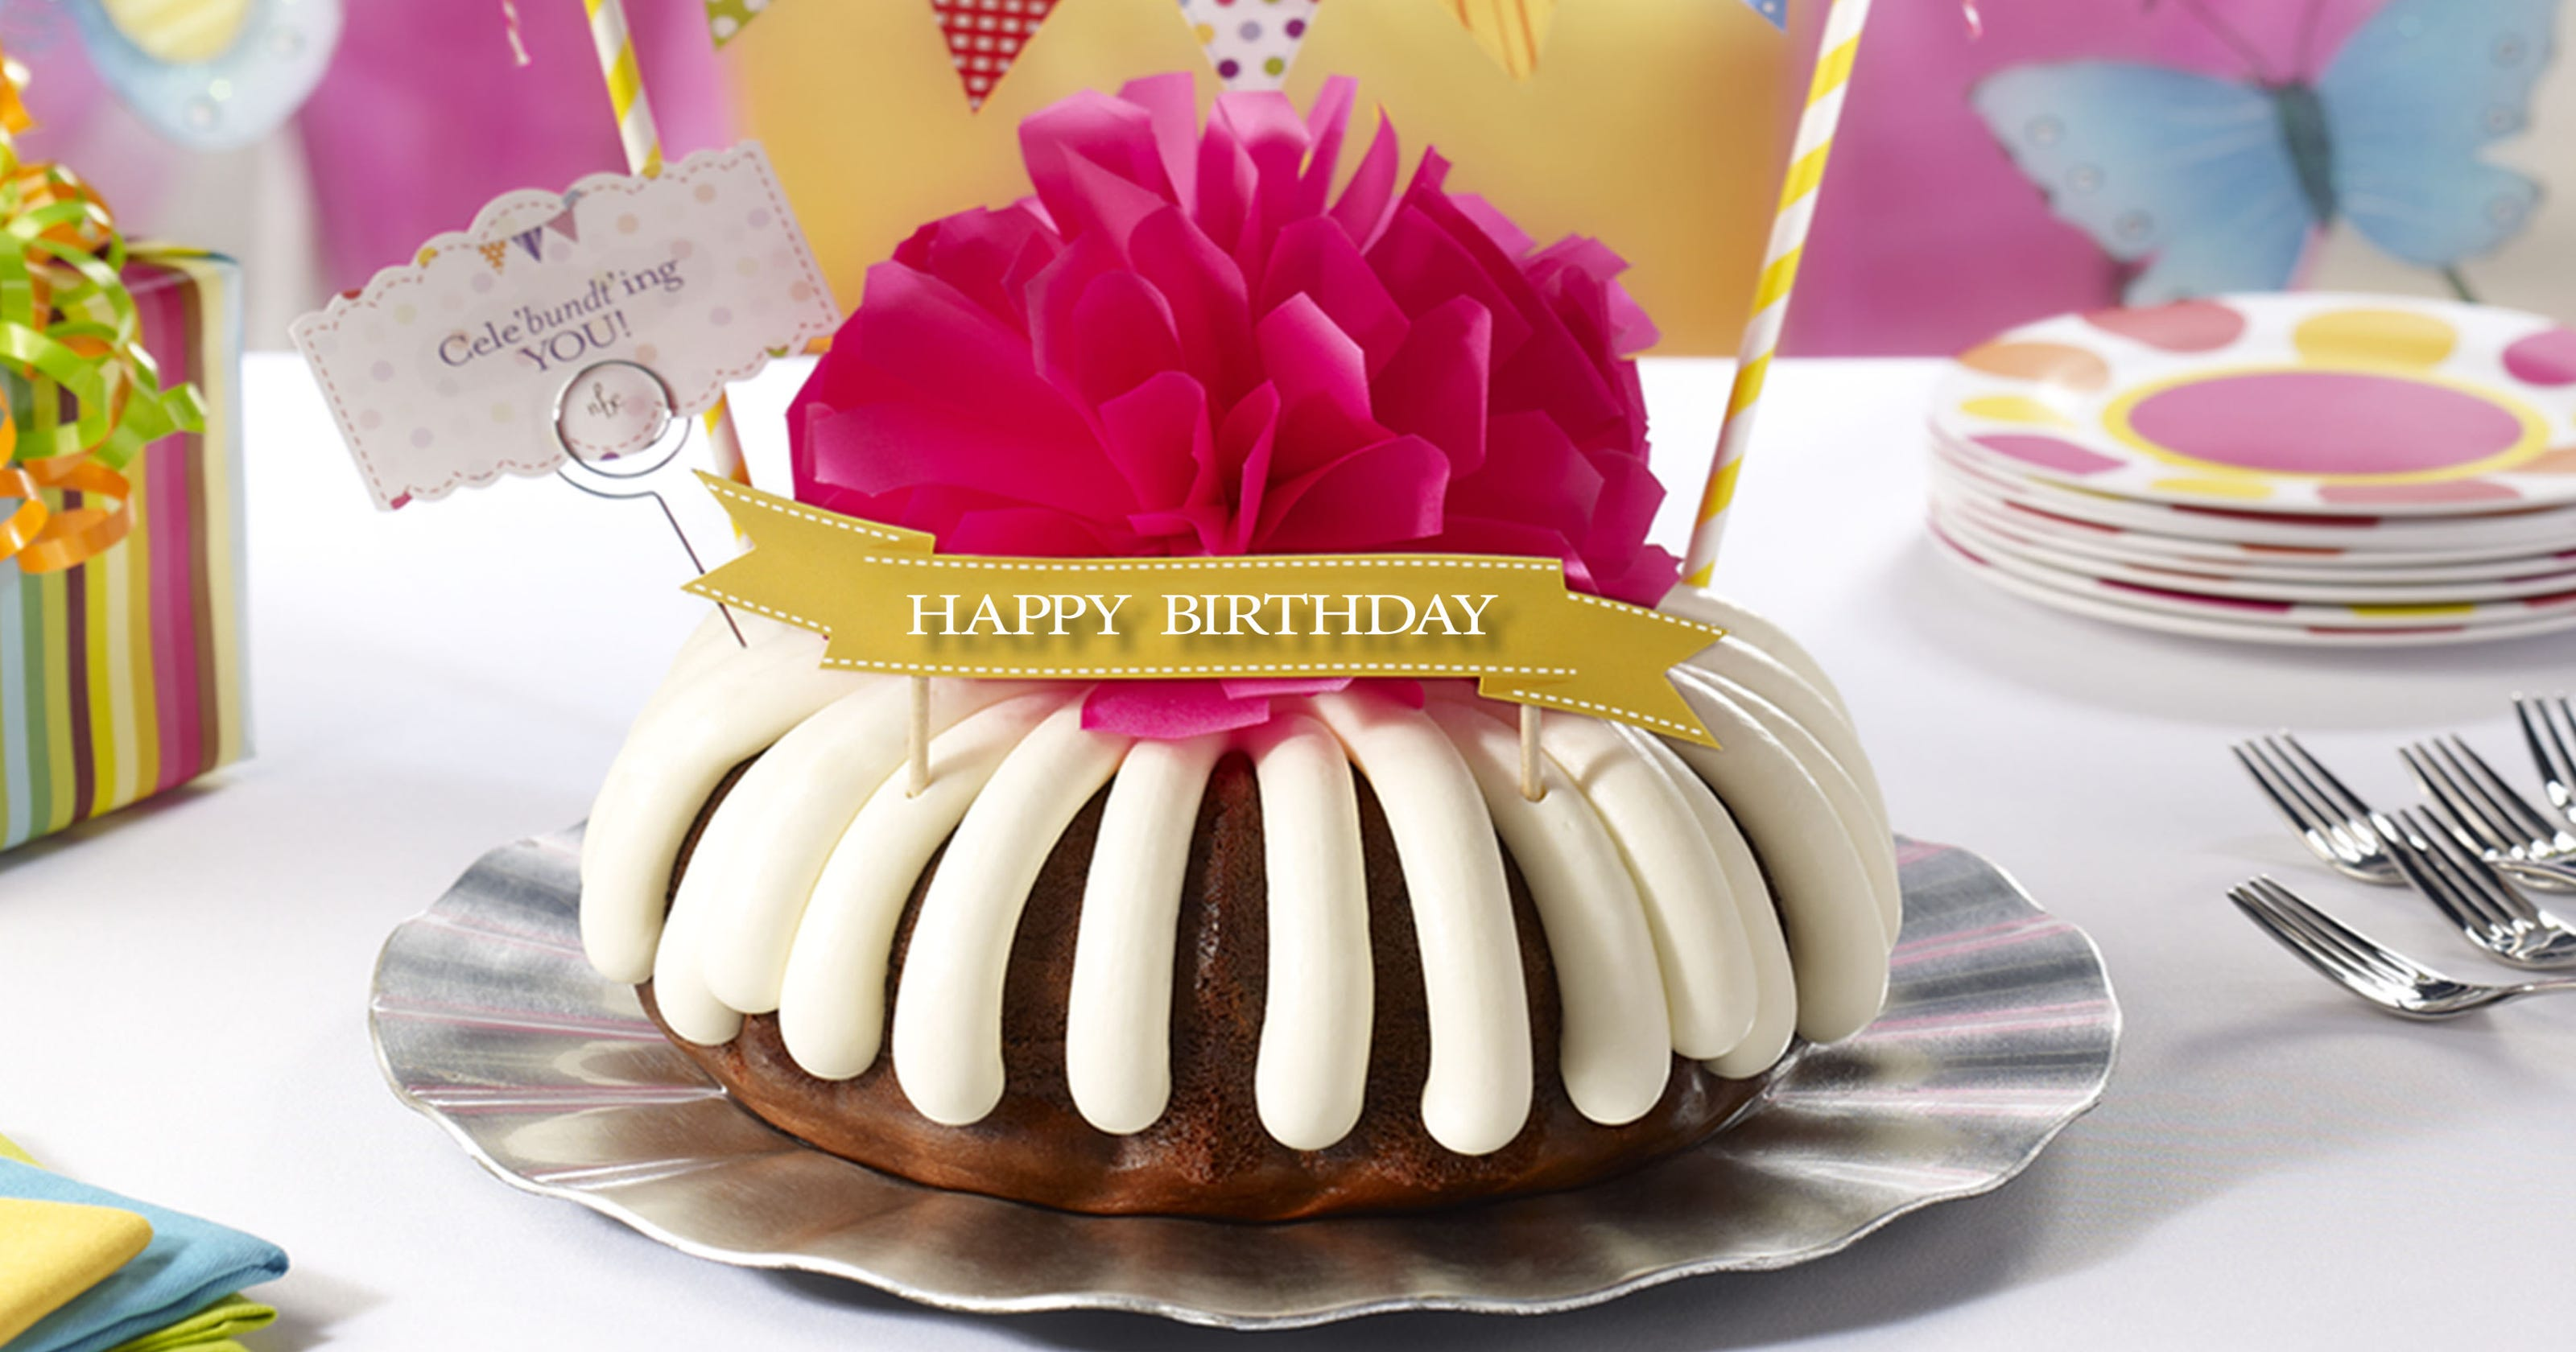 Nothing Bundt Cakes Cool Springs Tn Cake Image Diyimages